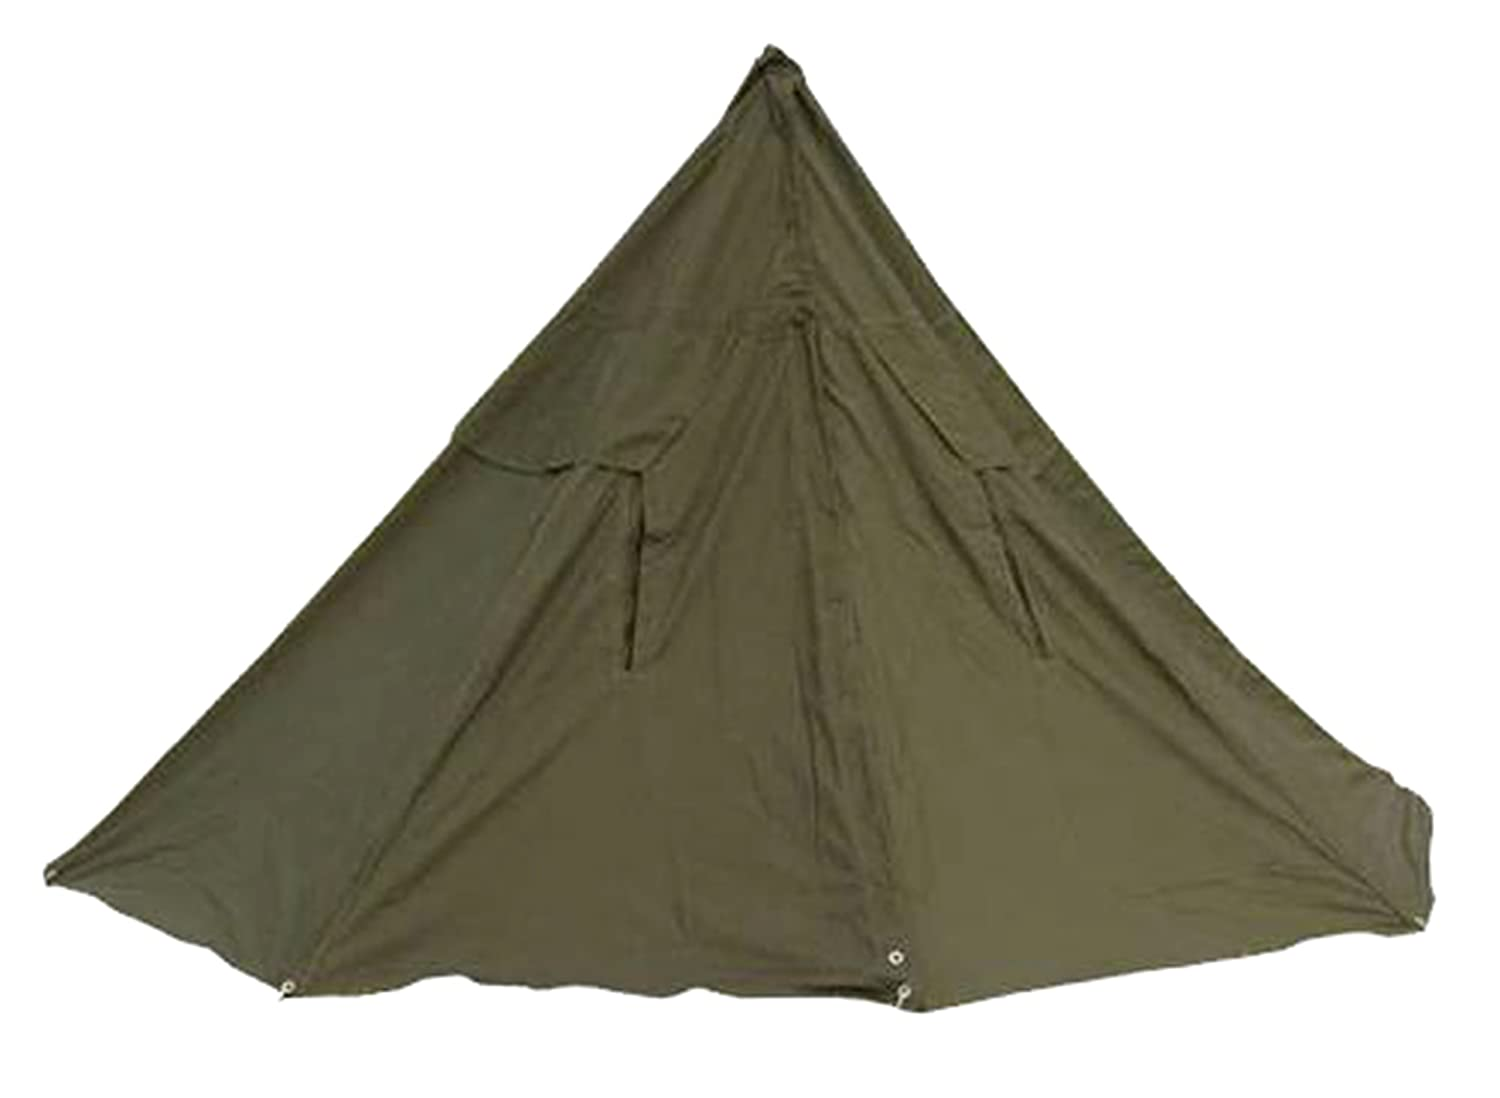 Polish Army Cotton Canvas Bell 2 Men Olive Drab Tent Ponchos with Pegs u0026 Poles Amazon.co.uk Sports u0026 Outdoors  sc 1 st  Amazon UK & Polish Army Cotton Canvas Bell 2 Men Olive Drab Tent Ponchos with ...